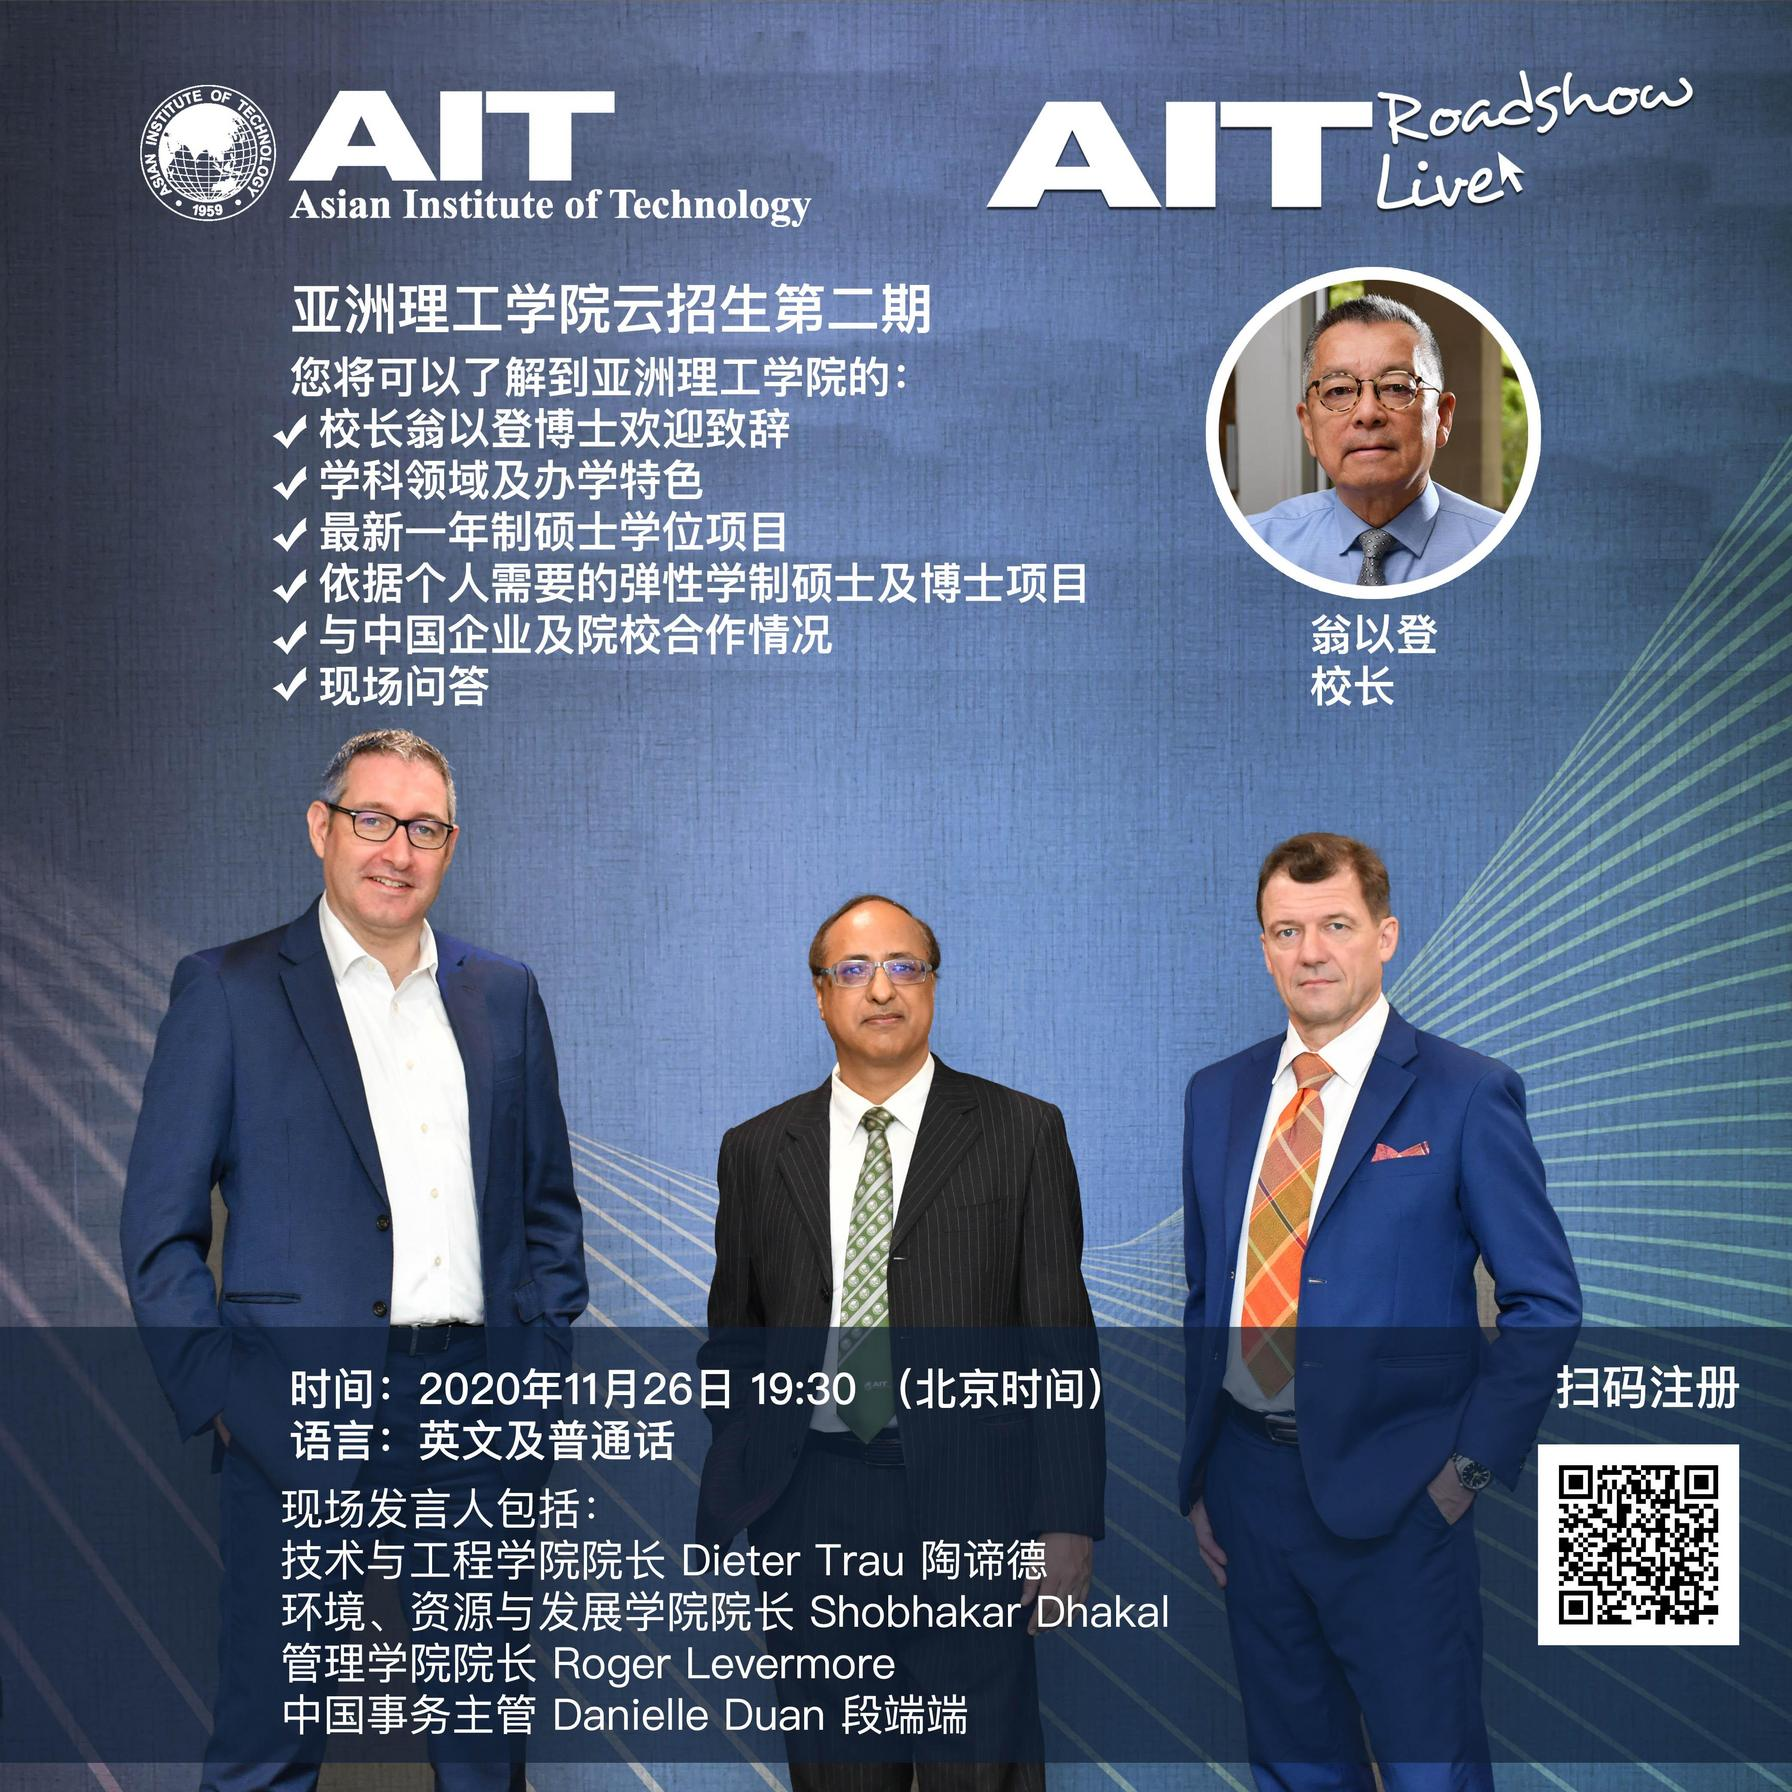 AIT roadshow Chinese Final